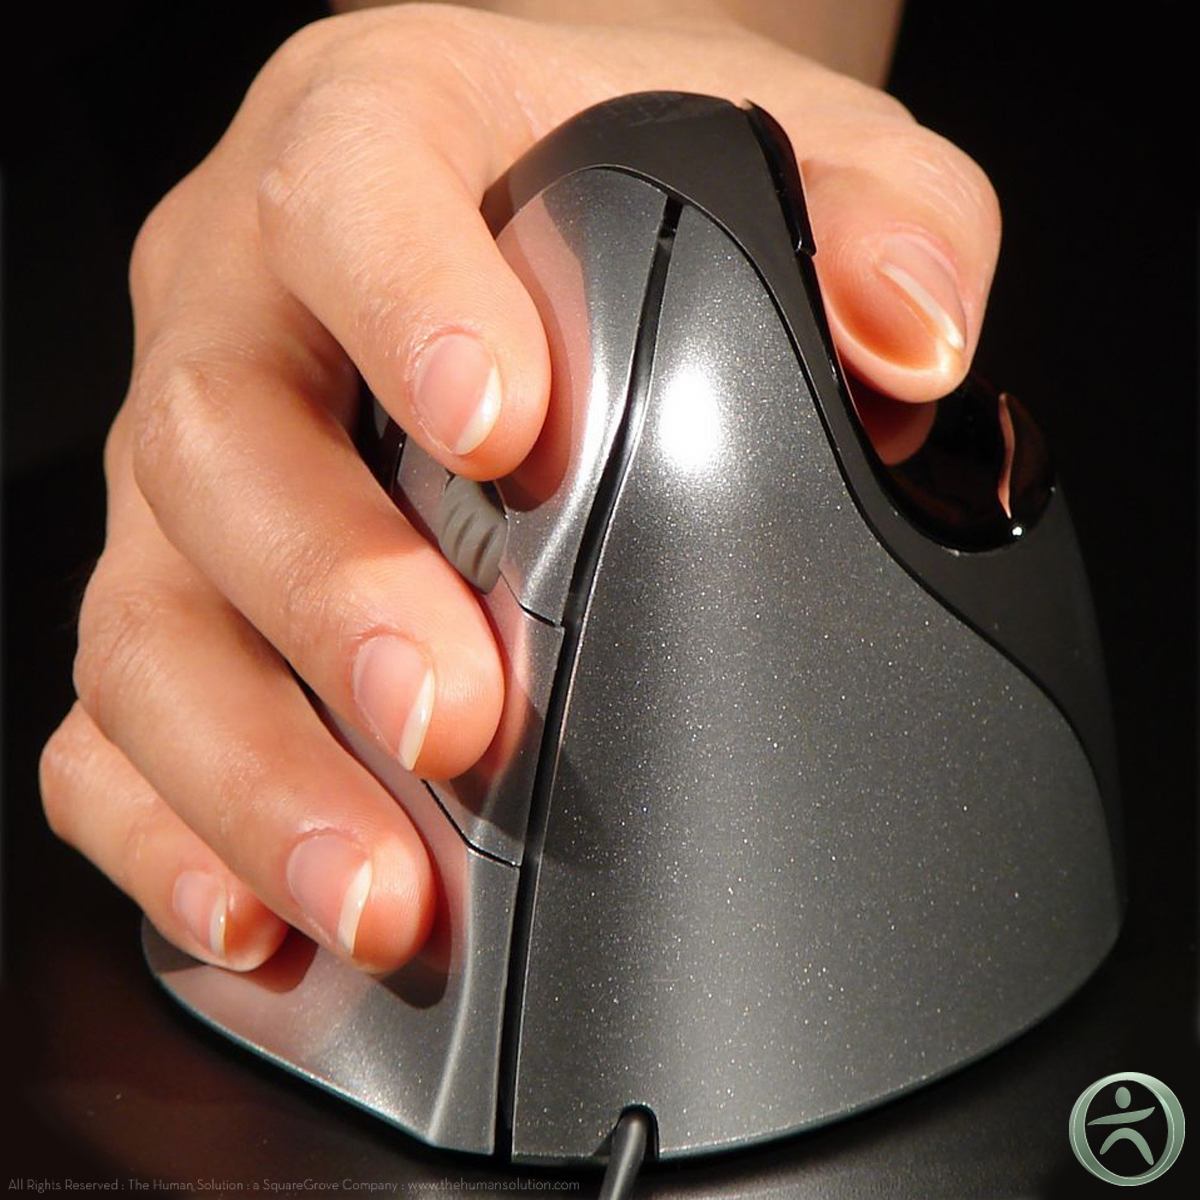 Which mouse grip is the most